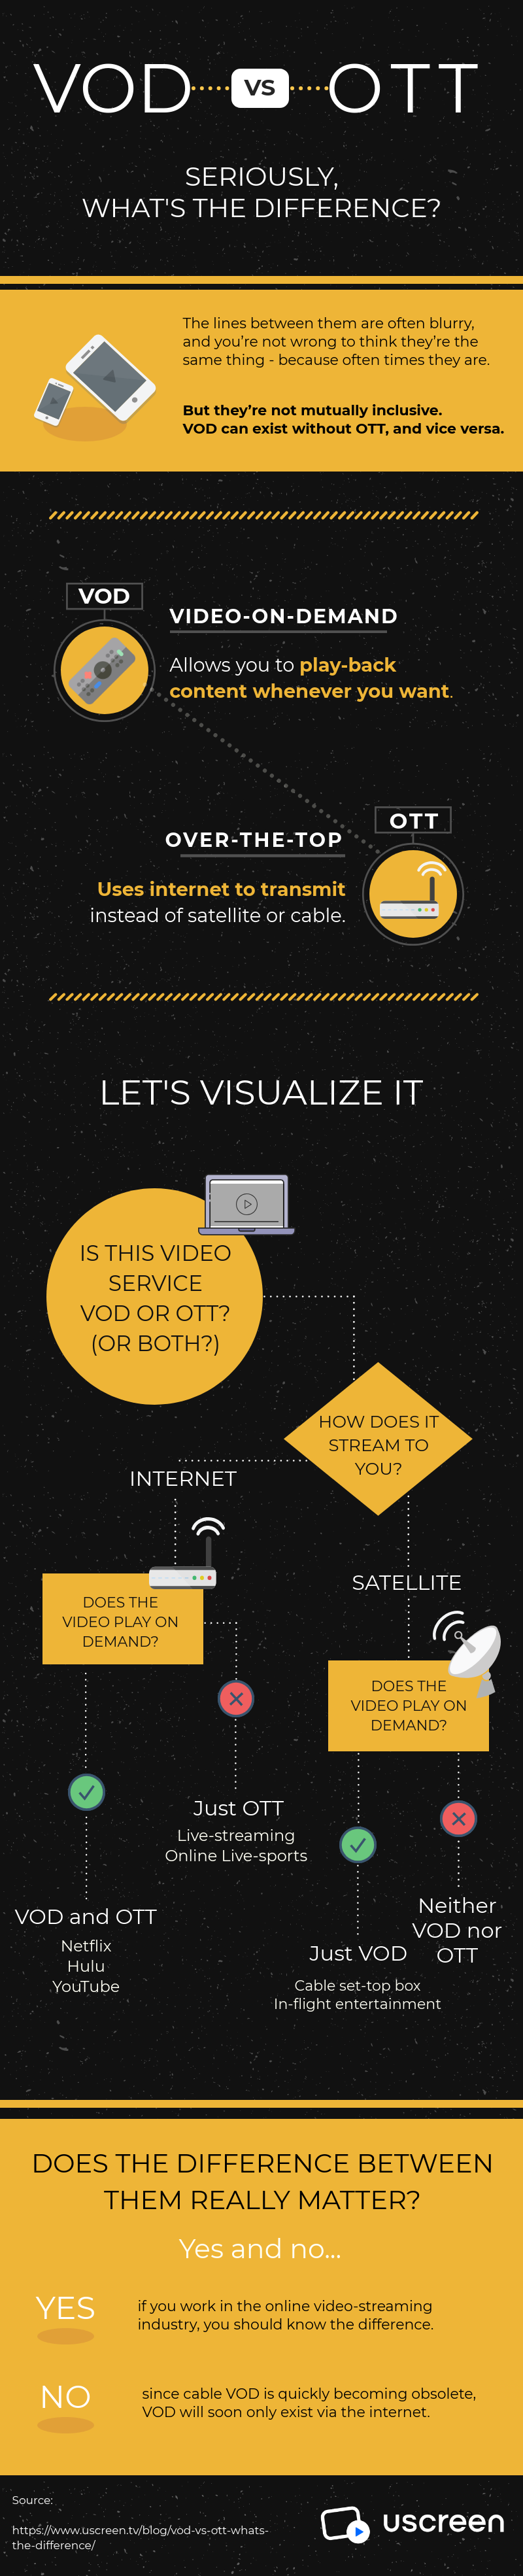 VOD vs OTT Infographic: What's the difference?